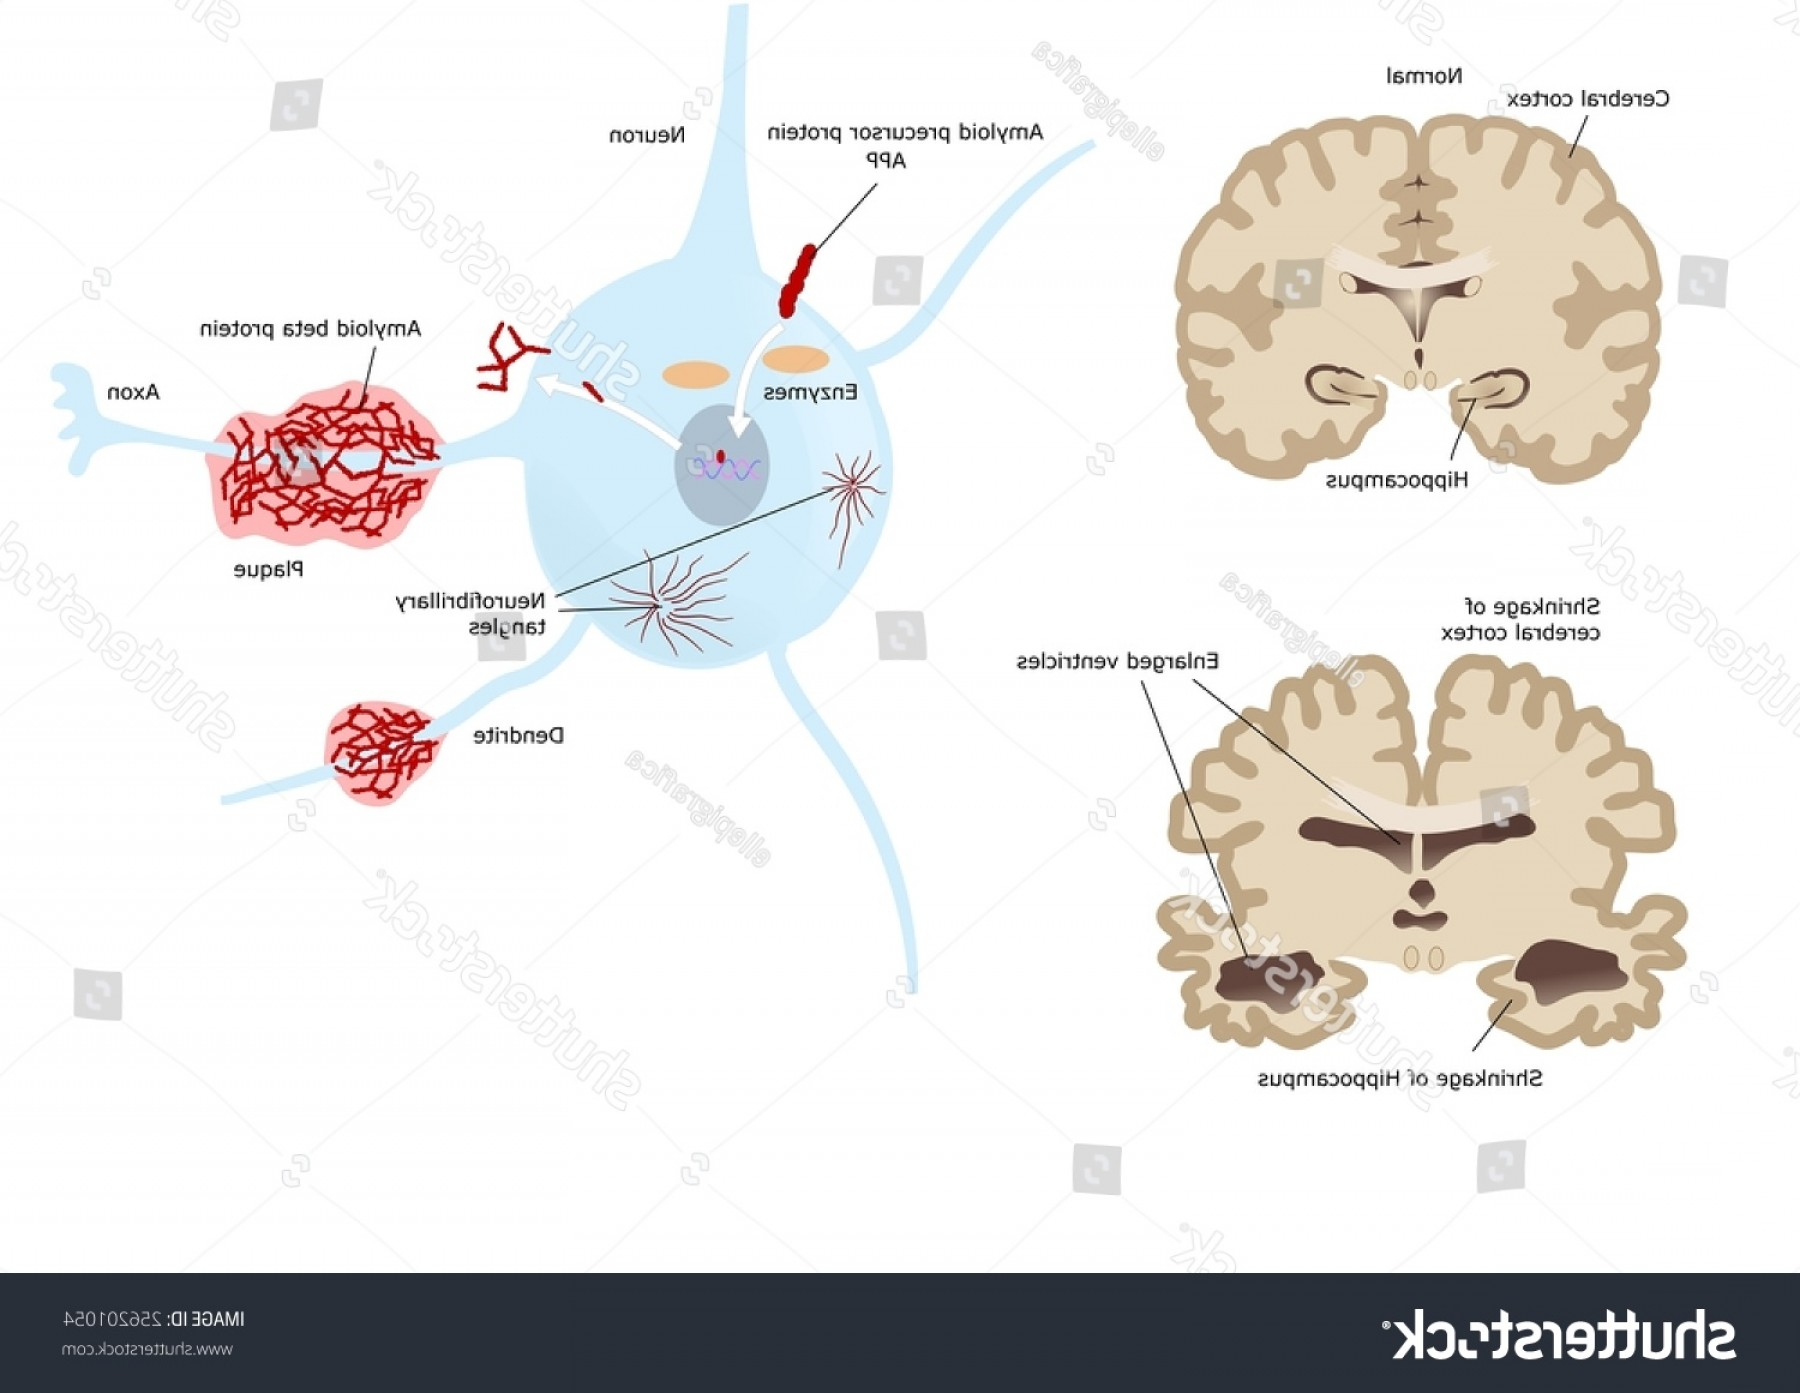 Vectors Diseases Caused By: Alzheimer Disease Caused By Beta Protein